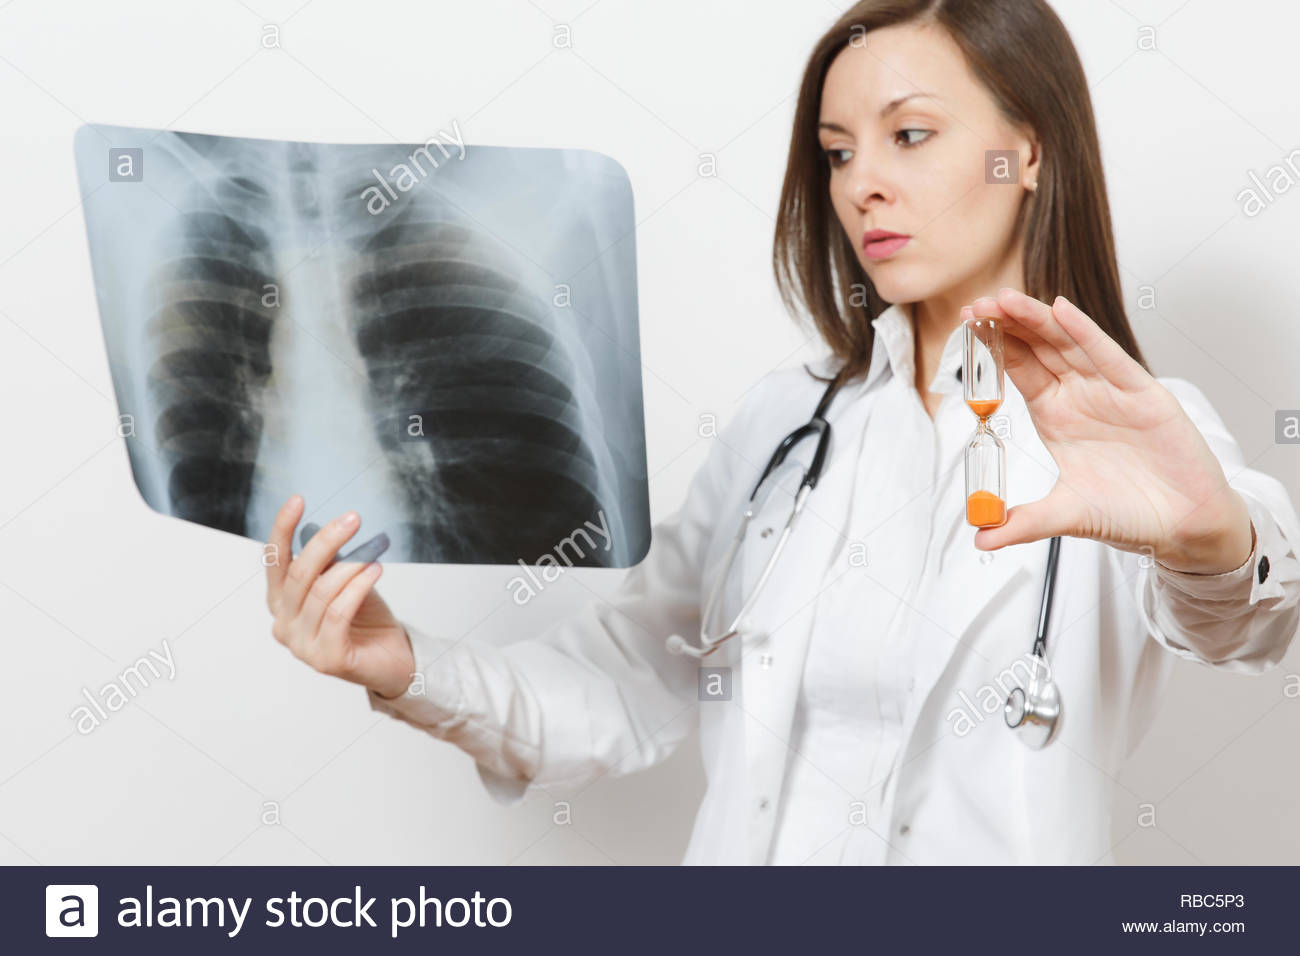 Doctor woman with hourglass, X-ray of lungs fluorography roentgen isolated on white background. Female doctor in medical gown stethoscope. Healthcare  - Stock Image